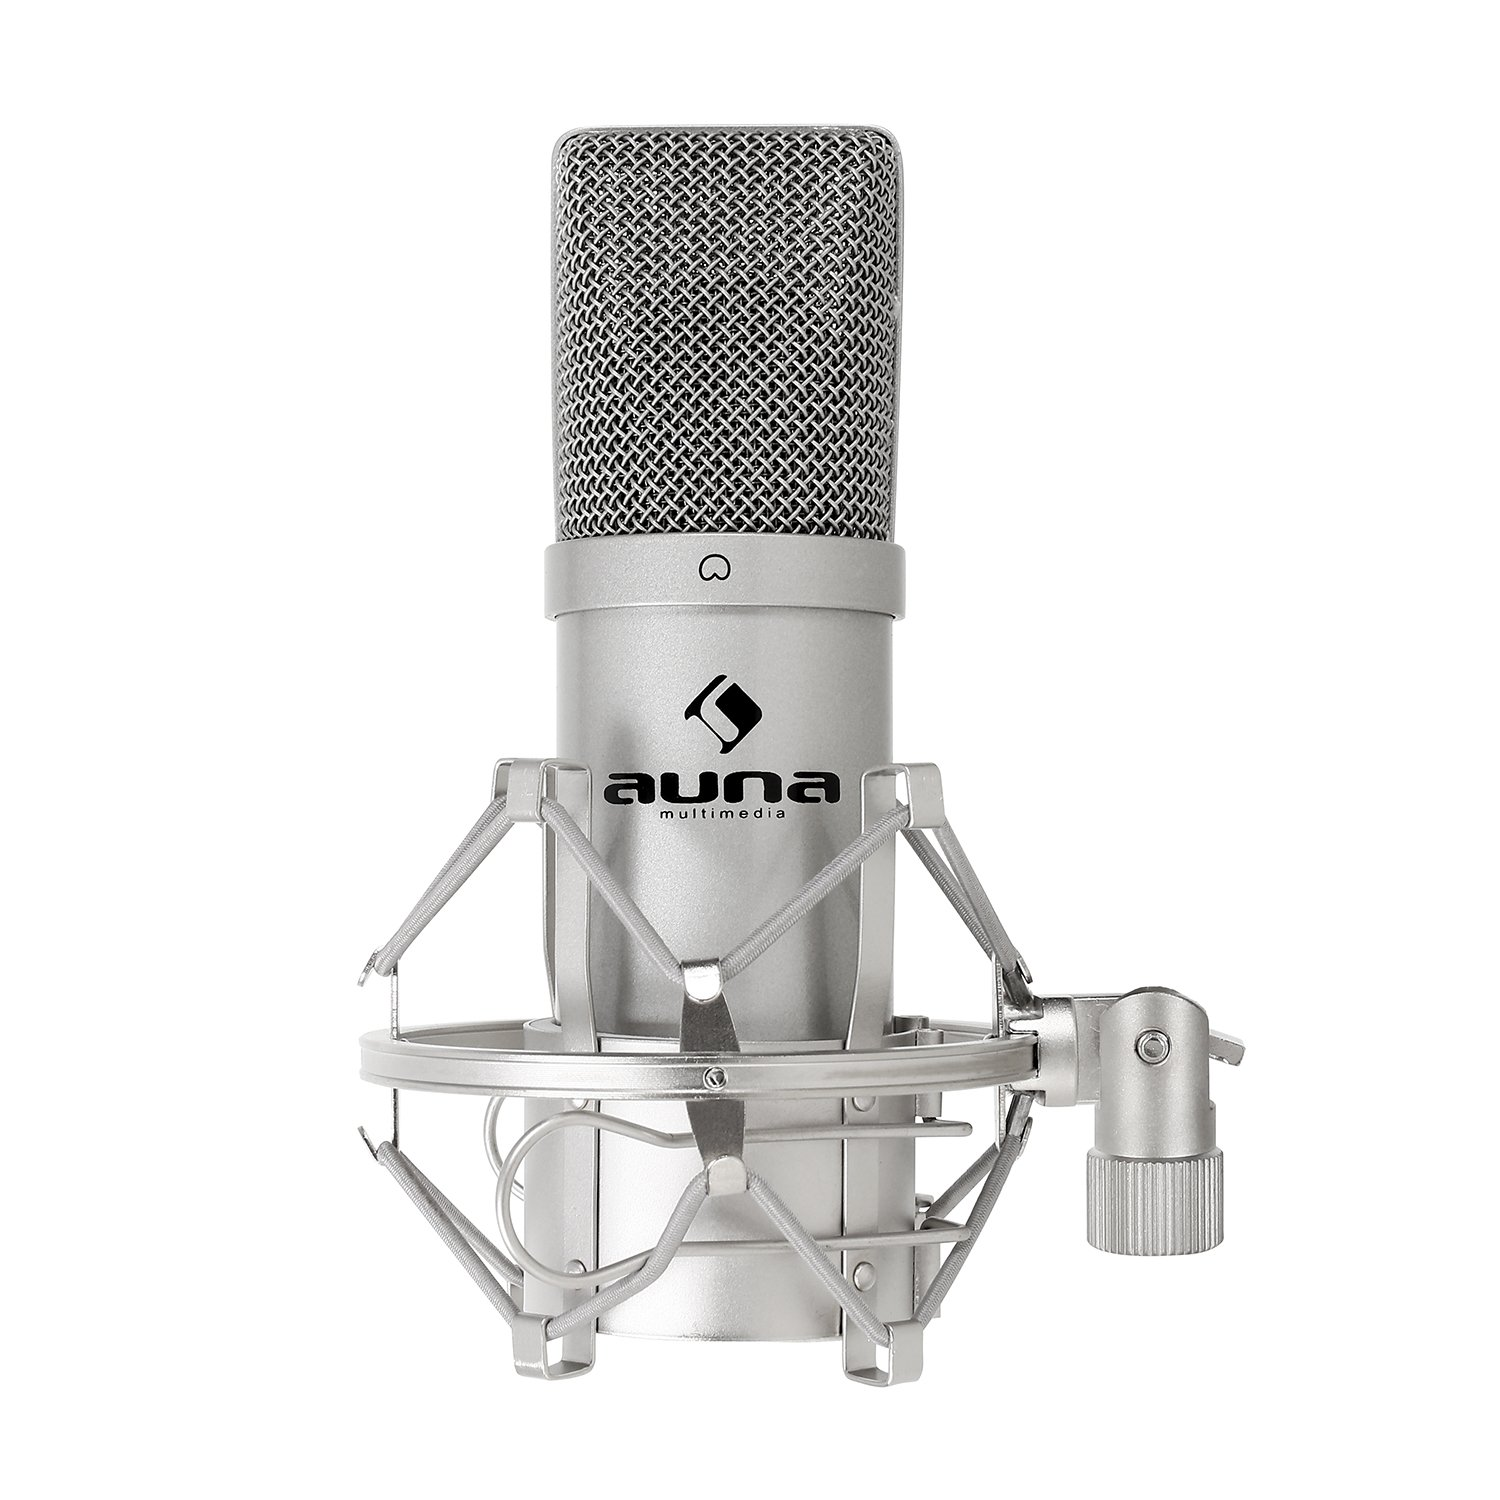 auna MIC-900S USB Cardioid Condenser Microphone • Studio Recording • Spider Shockmount • Plug & Play • 320Hz - 18KHz • Built-In 16mm Capsule • Silver